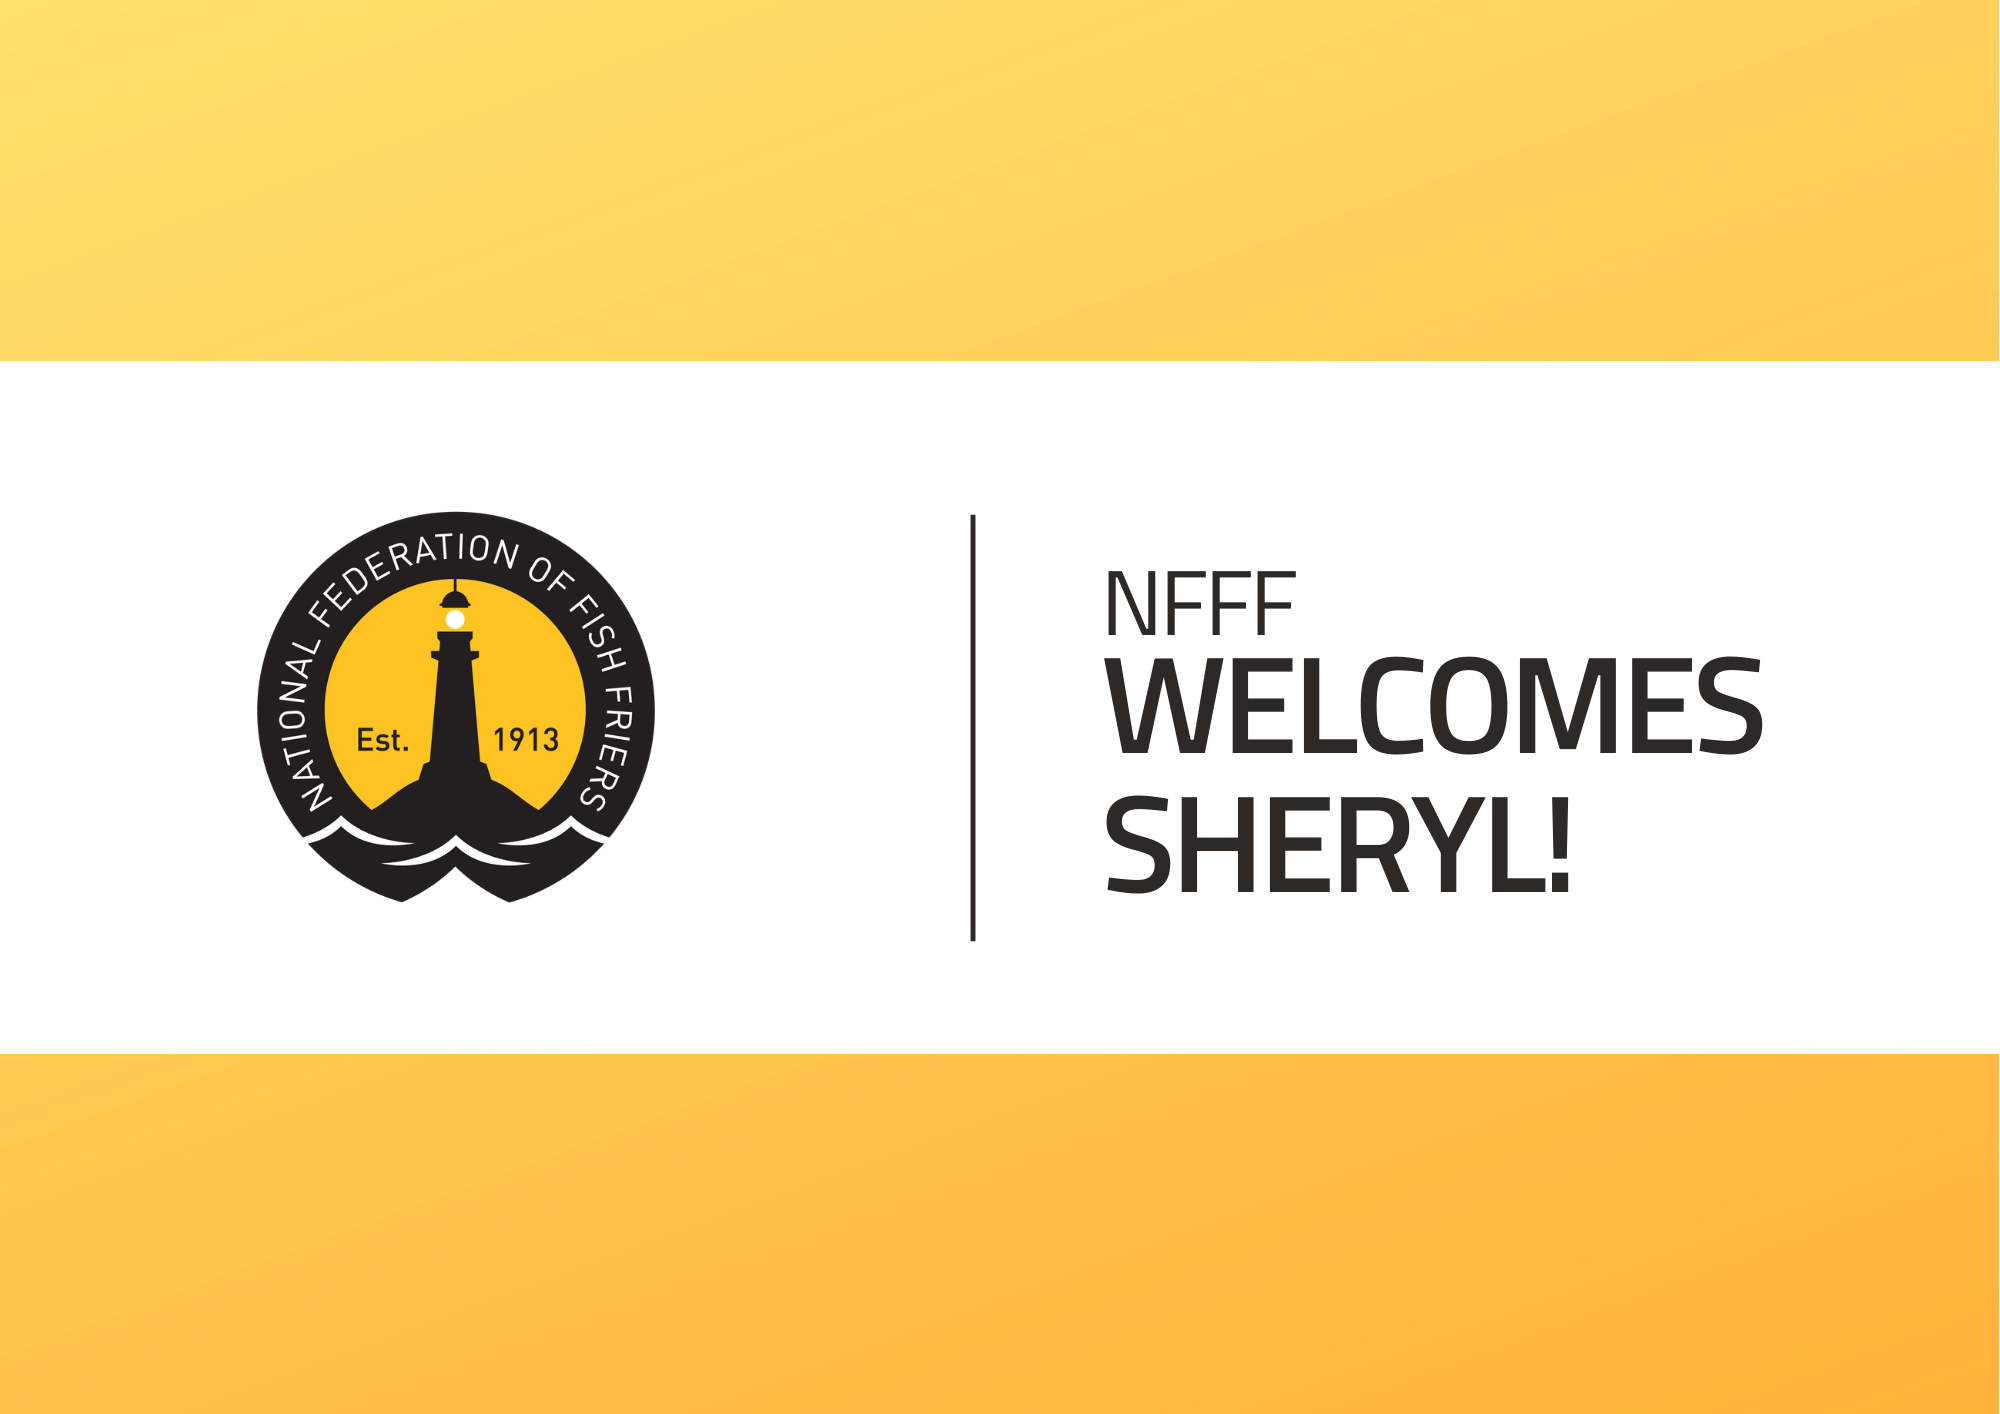 NFFF Welcomes Sherly